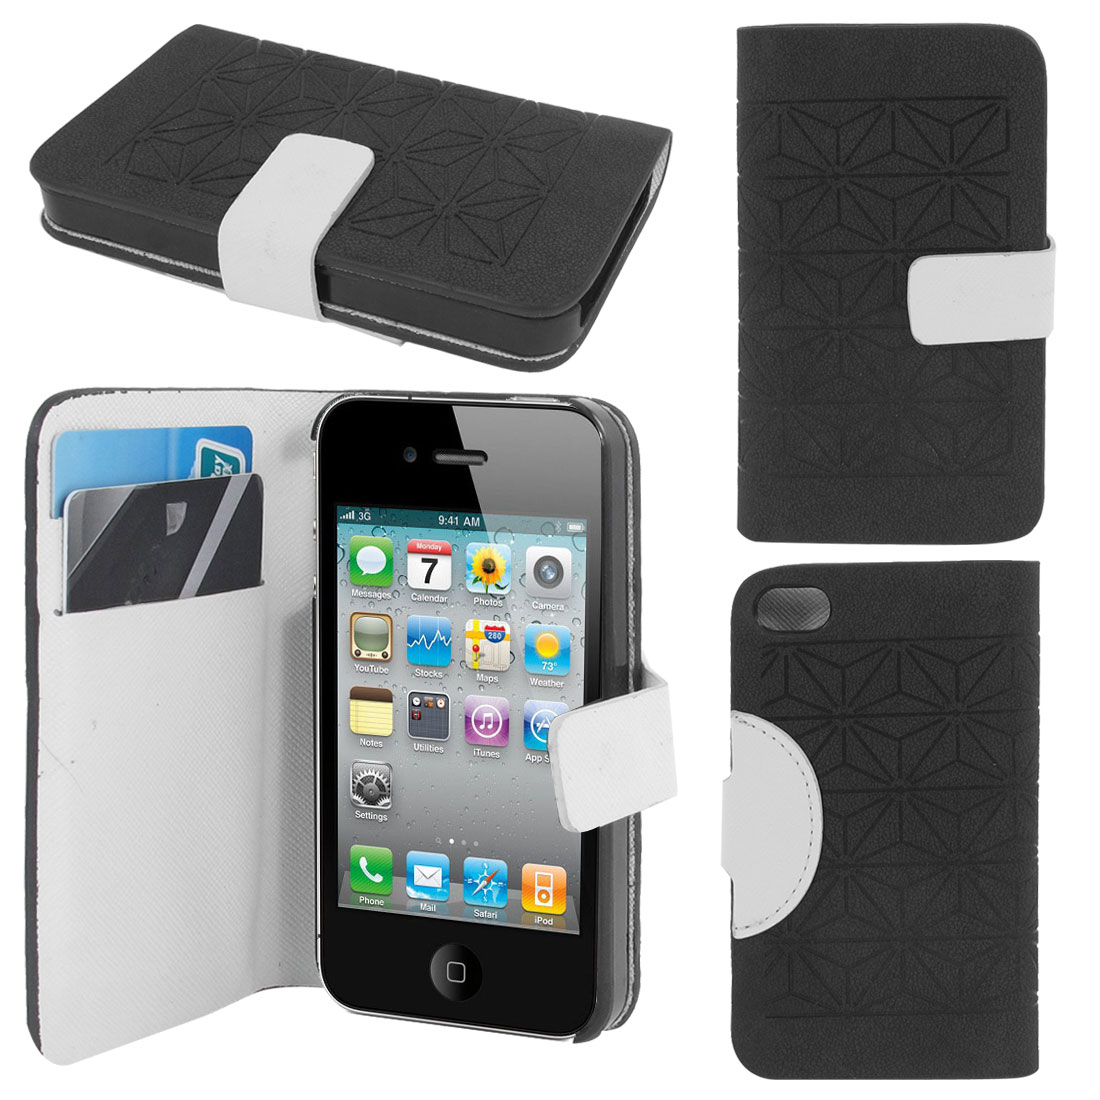 Gray Faux Leather Magnetic Flip Closure Cover Case for iPhone 4 4S